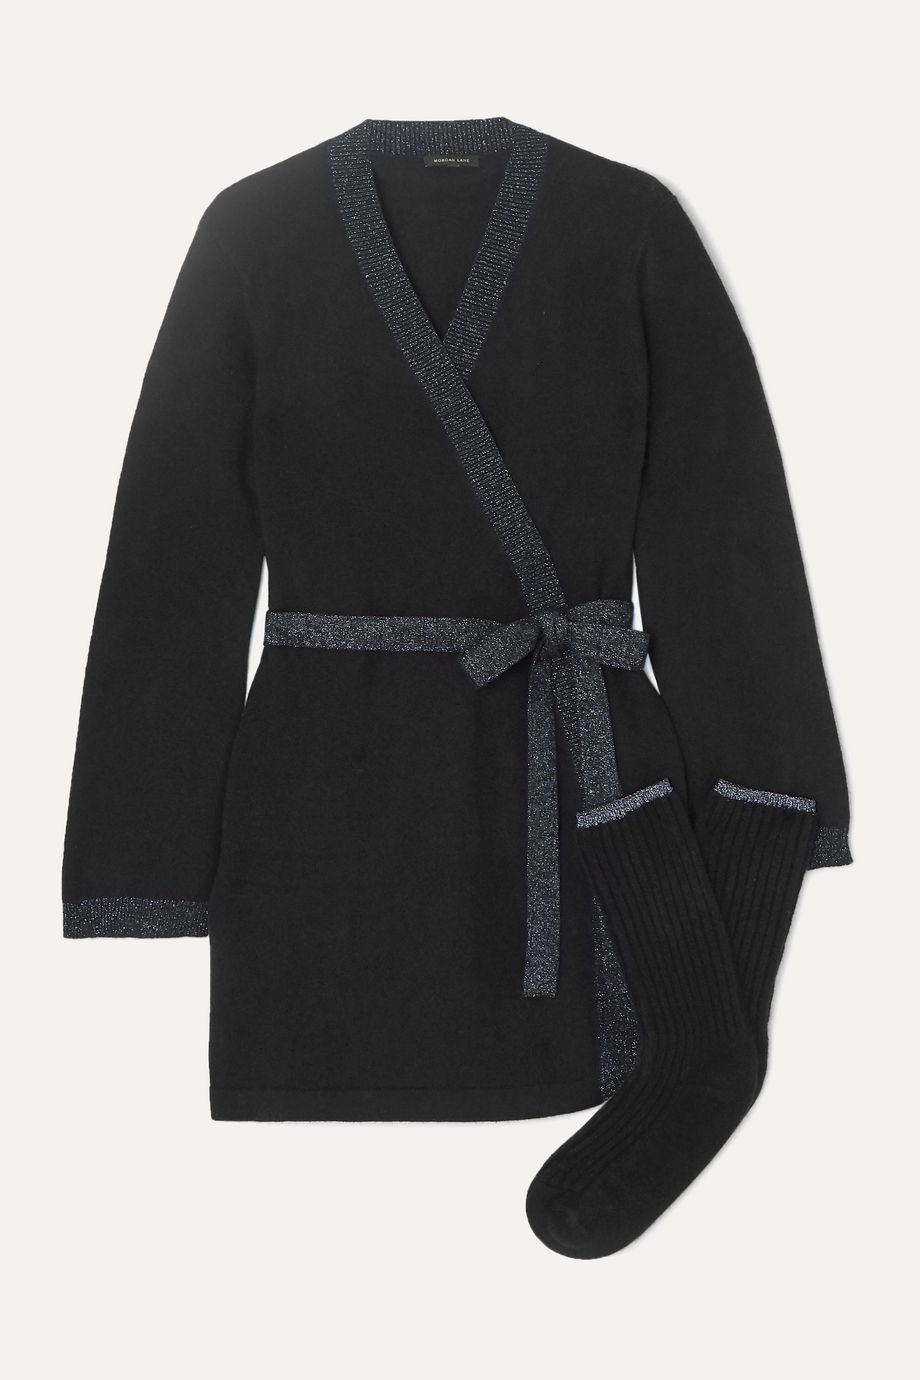 Morgan Lane Bella Lurex-trimmed cashmere robe and socks set